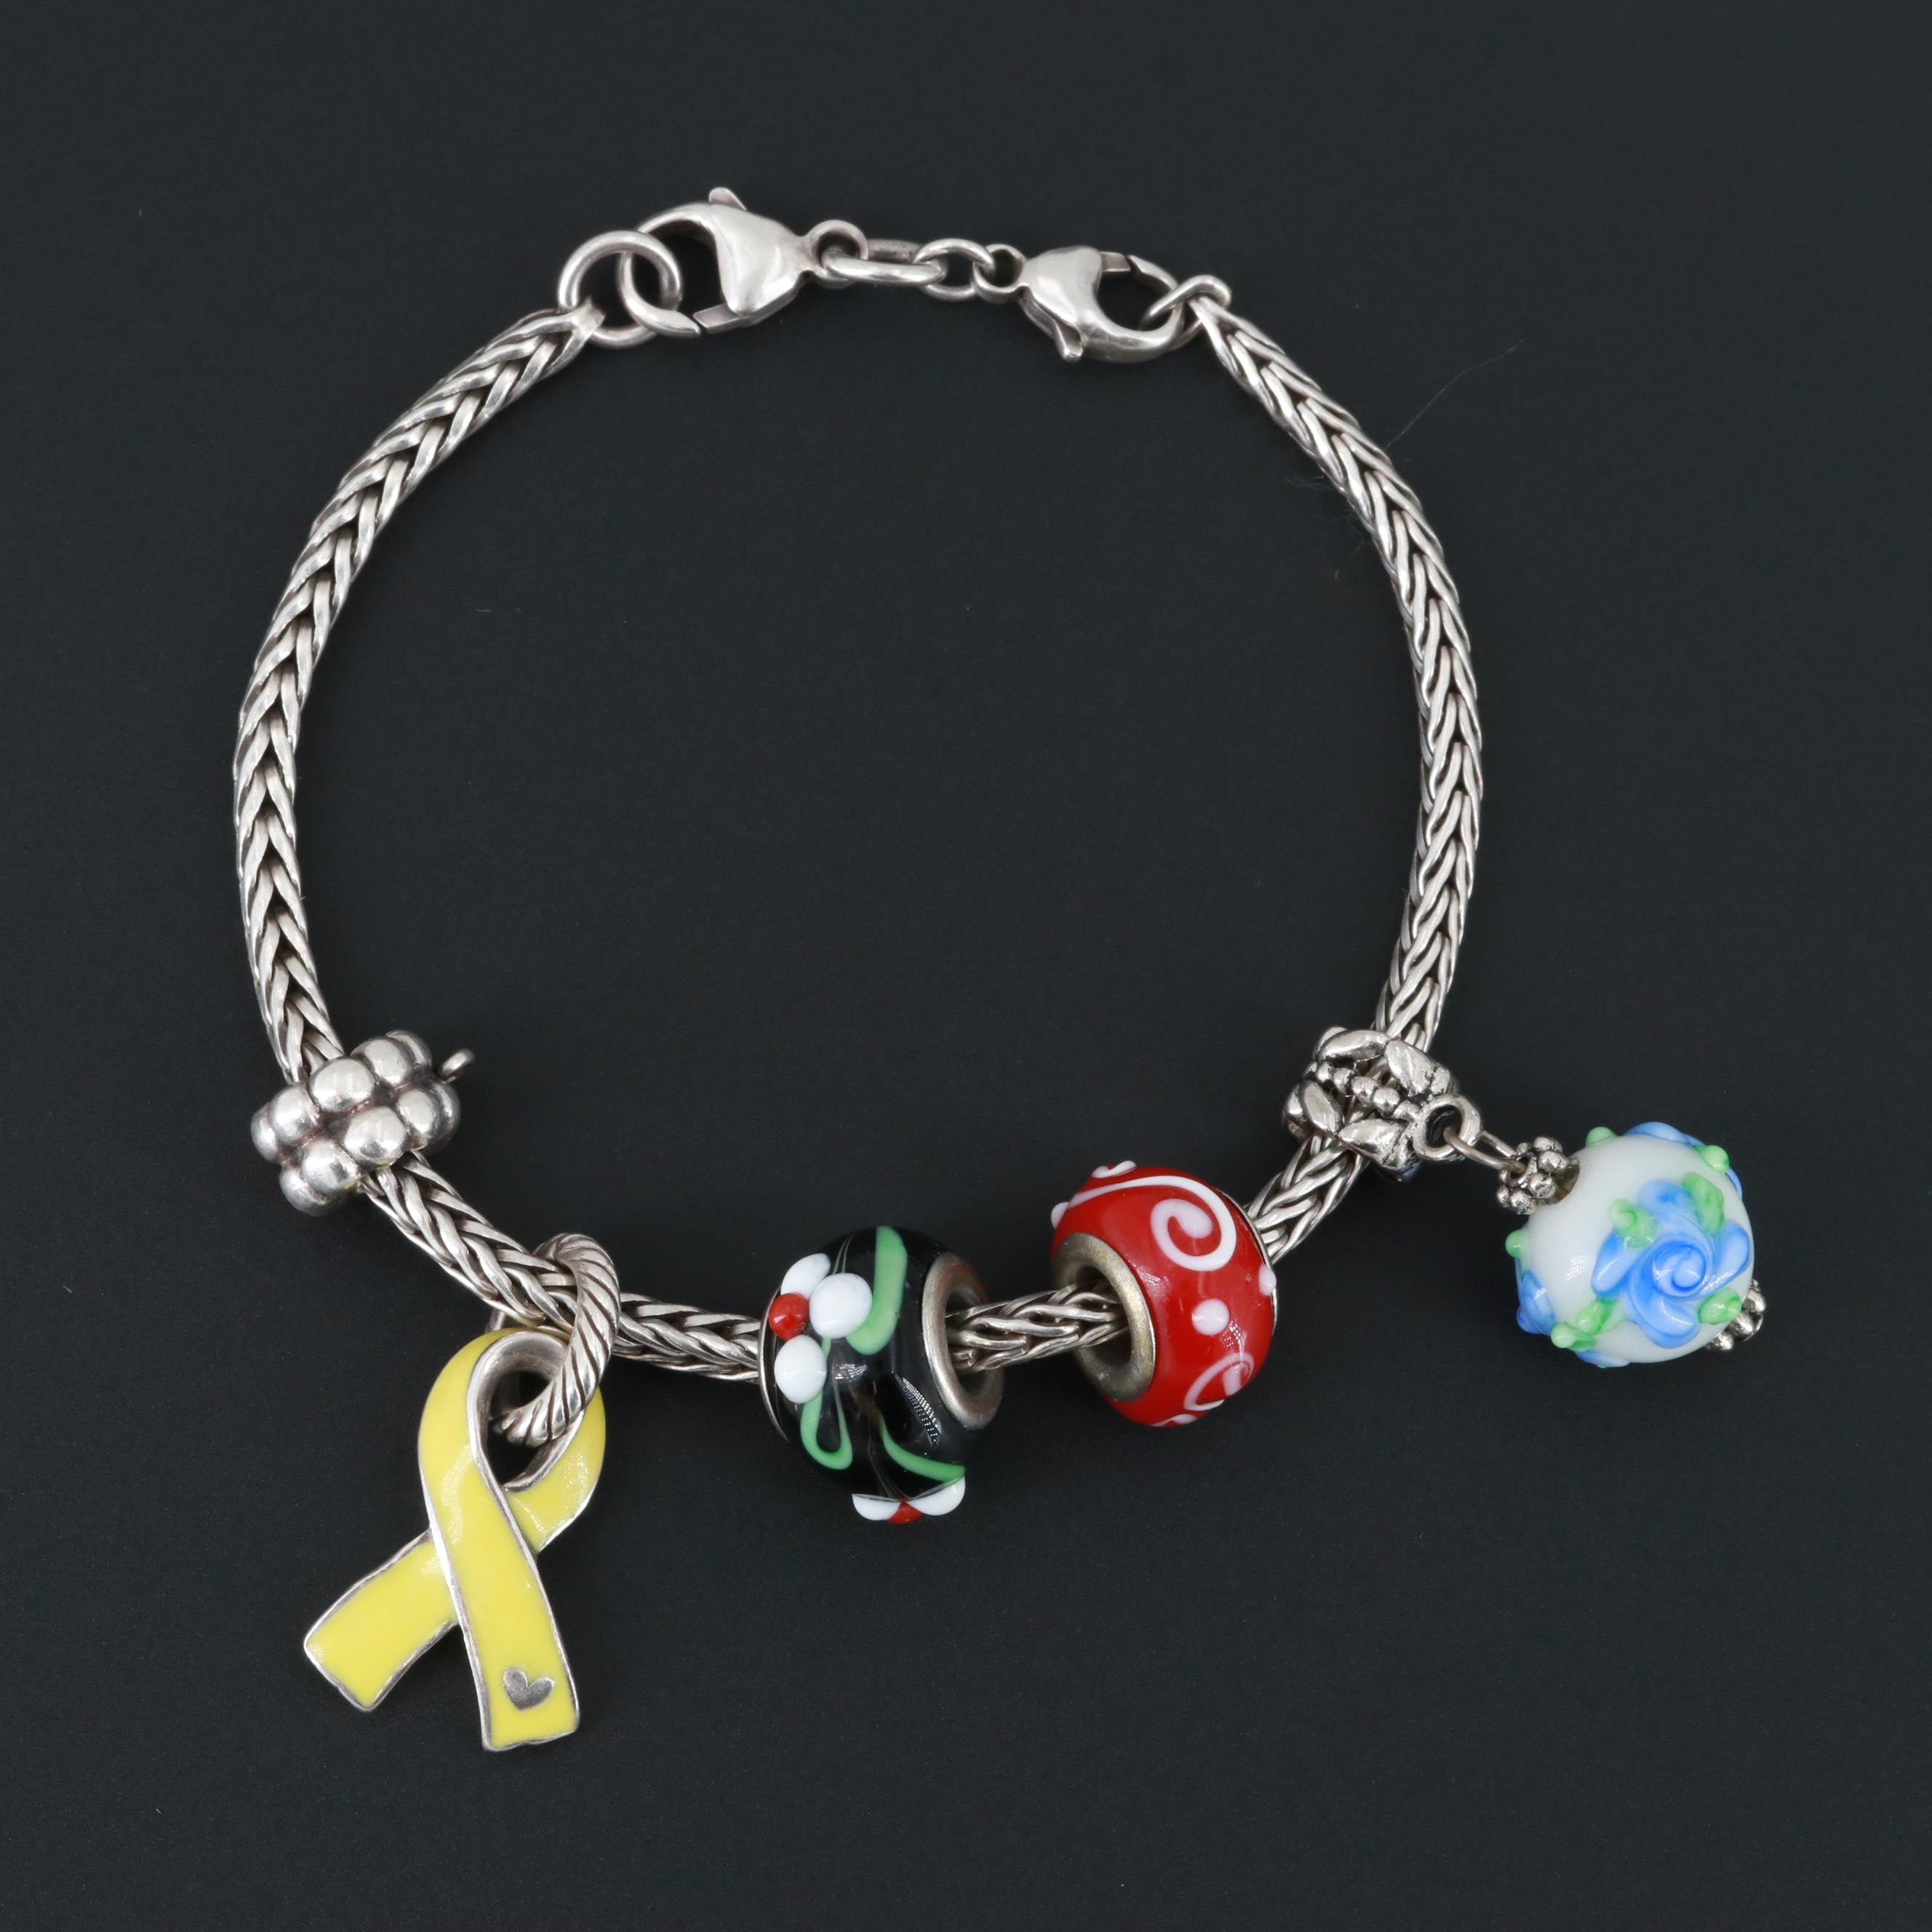 Sterling Silver Enamel Charm Bracelet With Silver Tone Glass Charms